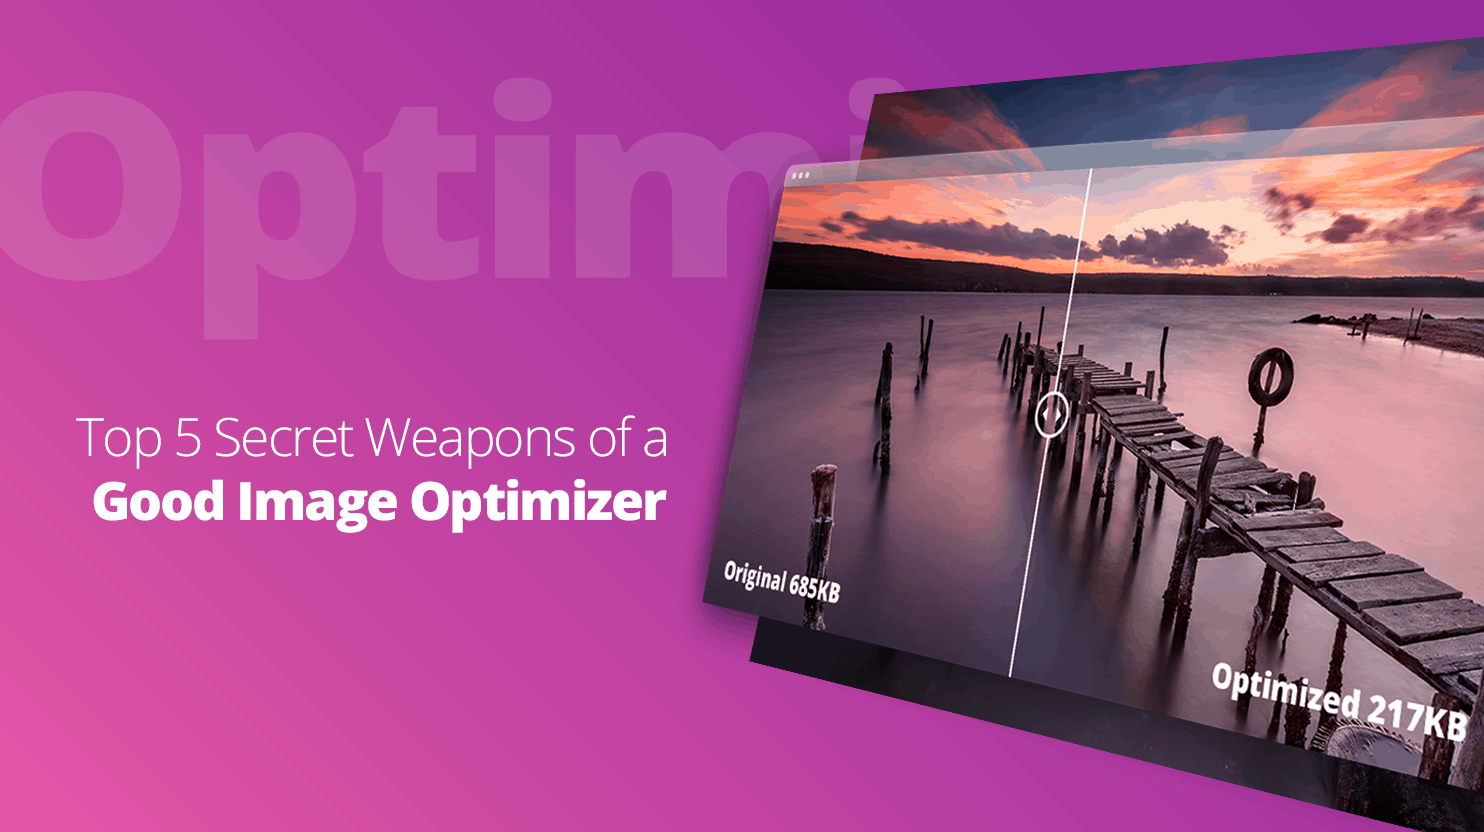 Secret Weapons of a Good Image Optimizer